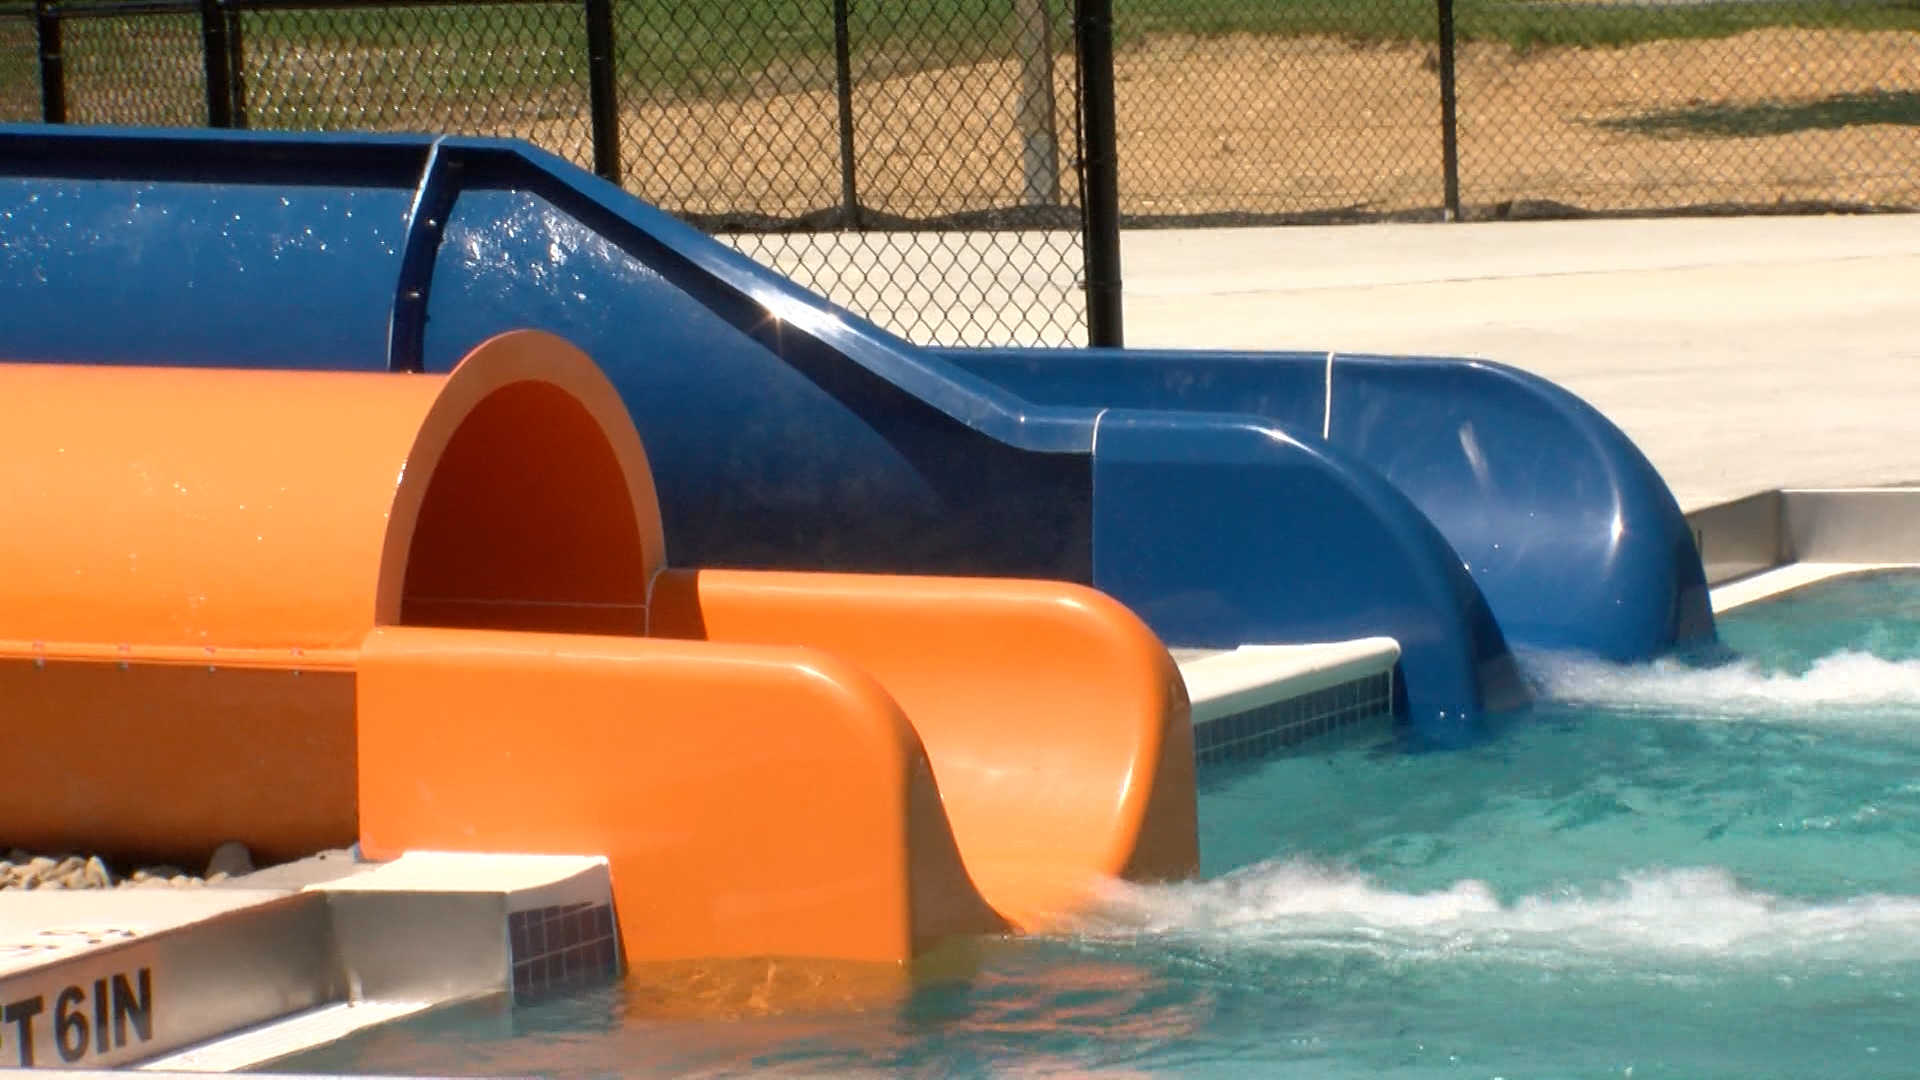 killens pond state park in del expands adds four new water slides